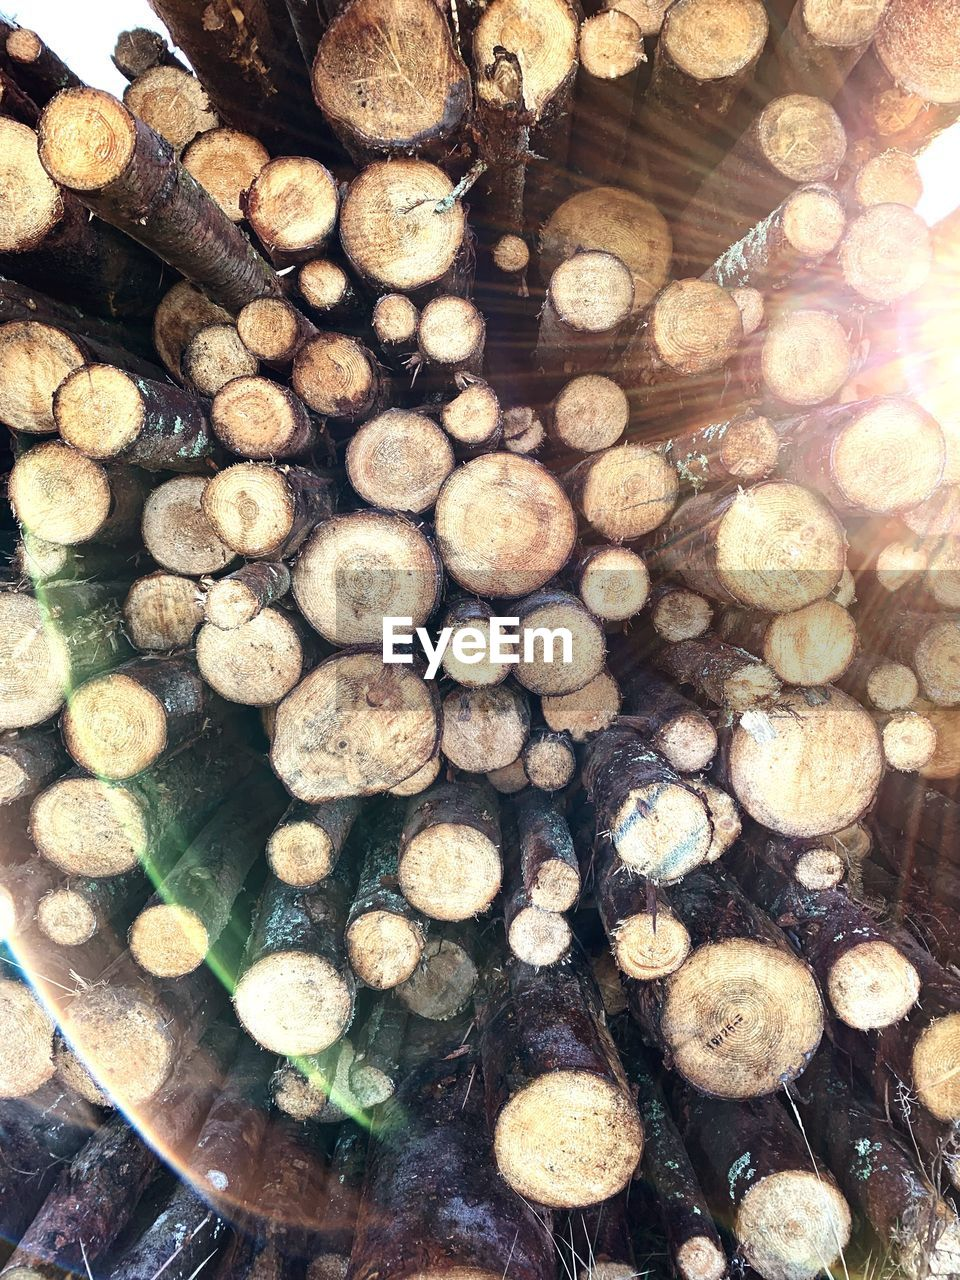 abundance, timber, large group of objects, wood, log, full frame, lumber industry, firewood, tree, deforestation, no people, backgrounds, stack, wood - material, forest, fuel and power generation, fossil fuel, nature, environmental issues, choice